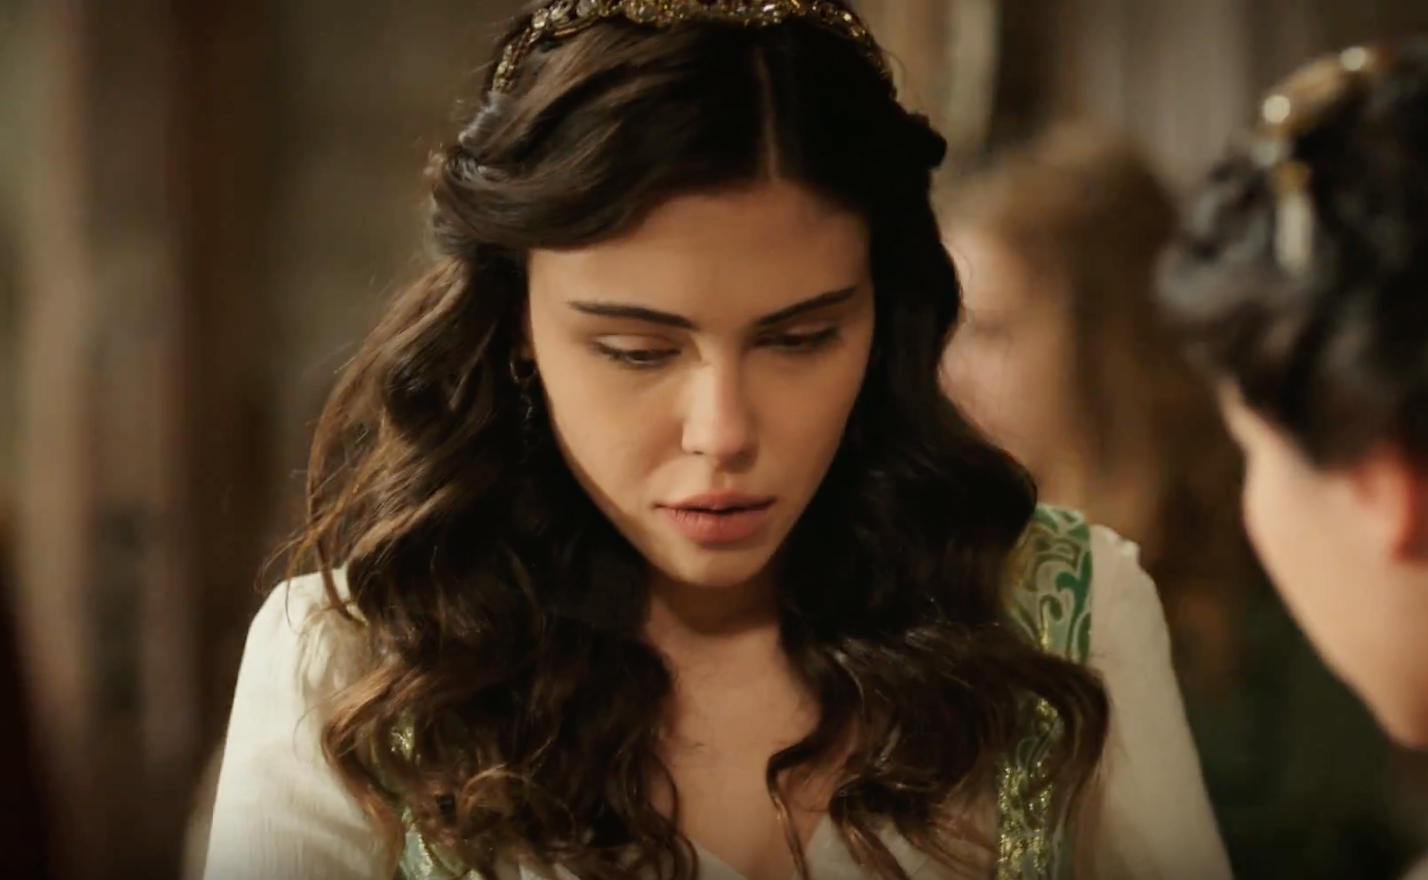 Mahfiruze Rasha Hatun On The Edge Of Extinction Inkirazin Esiginde Season 1 Episode 6 Medieval Dress Beautiful Beaumont